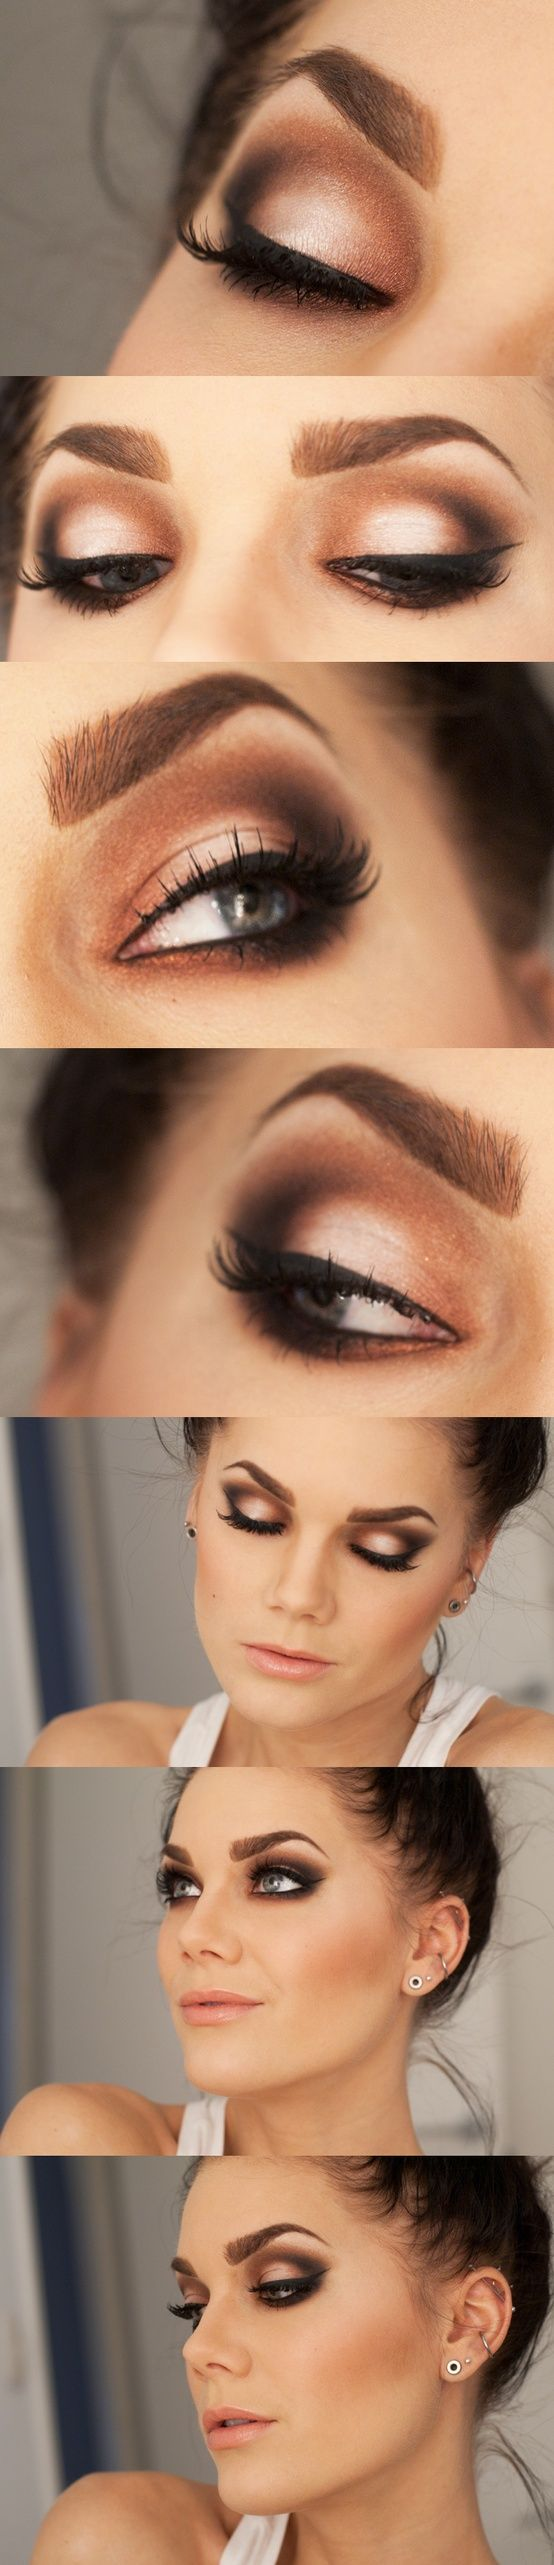 Adele eyes-It's a lot of makeup, but it sure does create something beautiful.